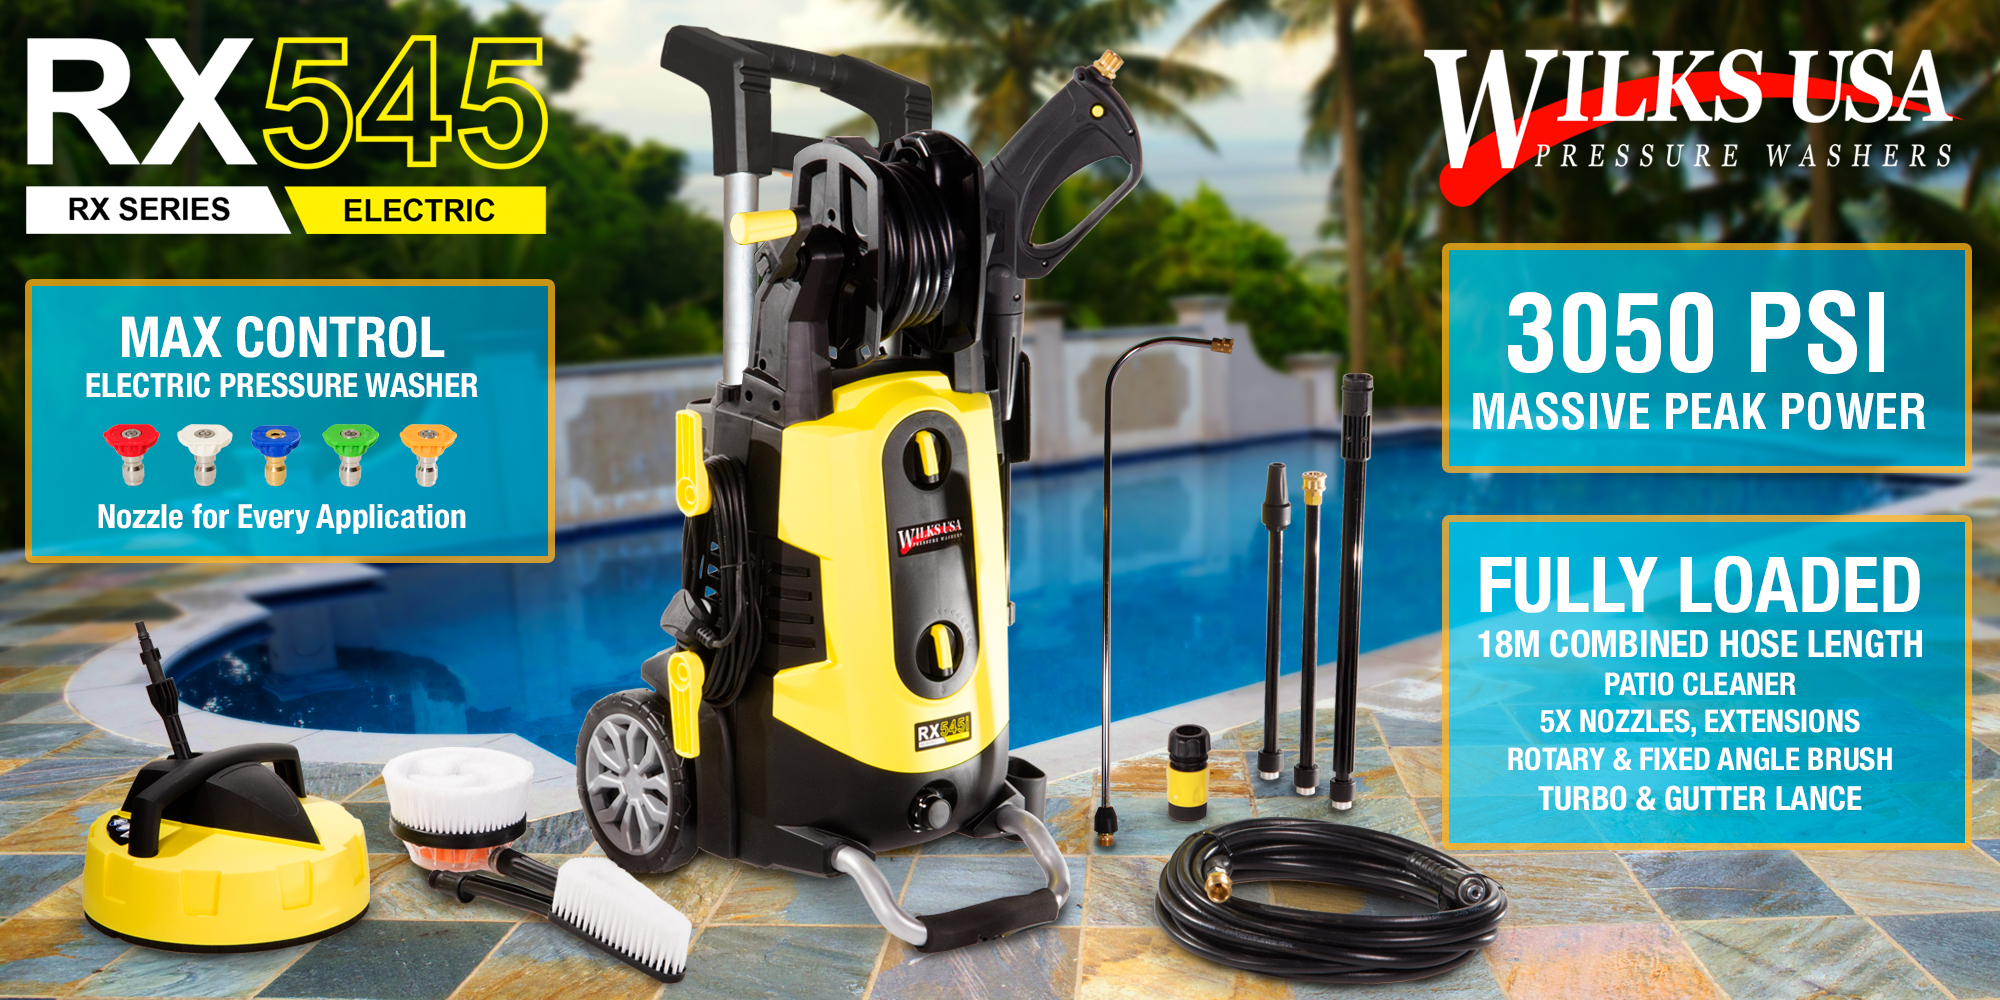 Electric Pressure Washer 3050 Psi 210 Bar Power Patio